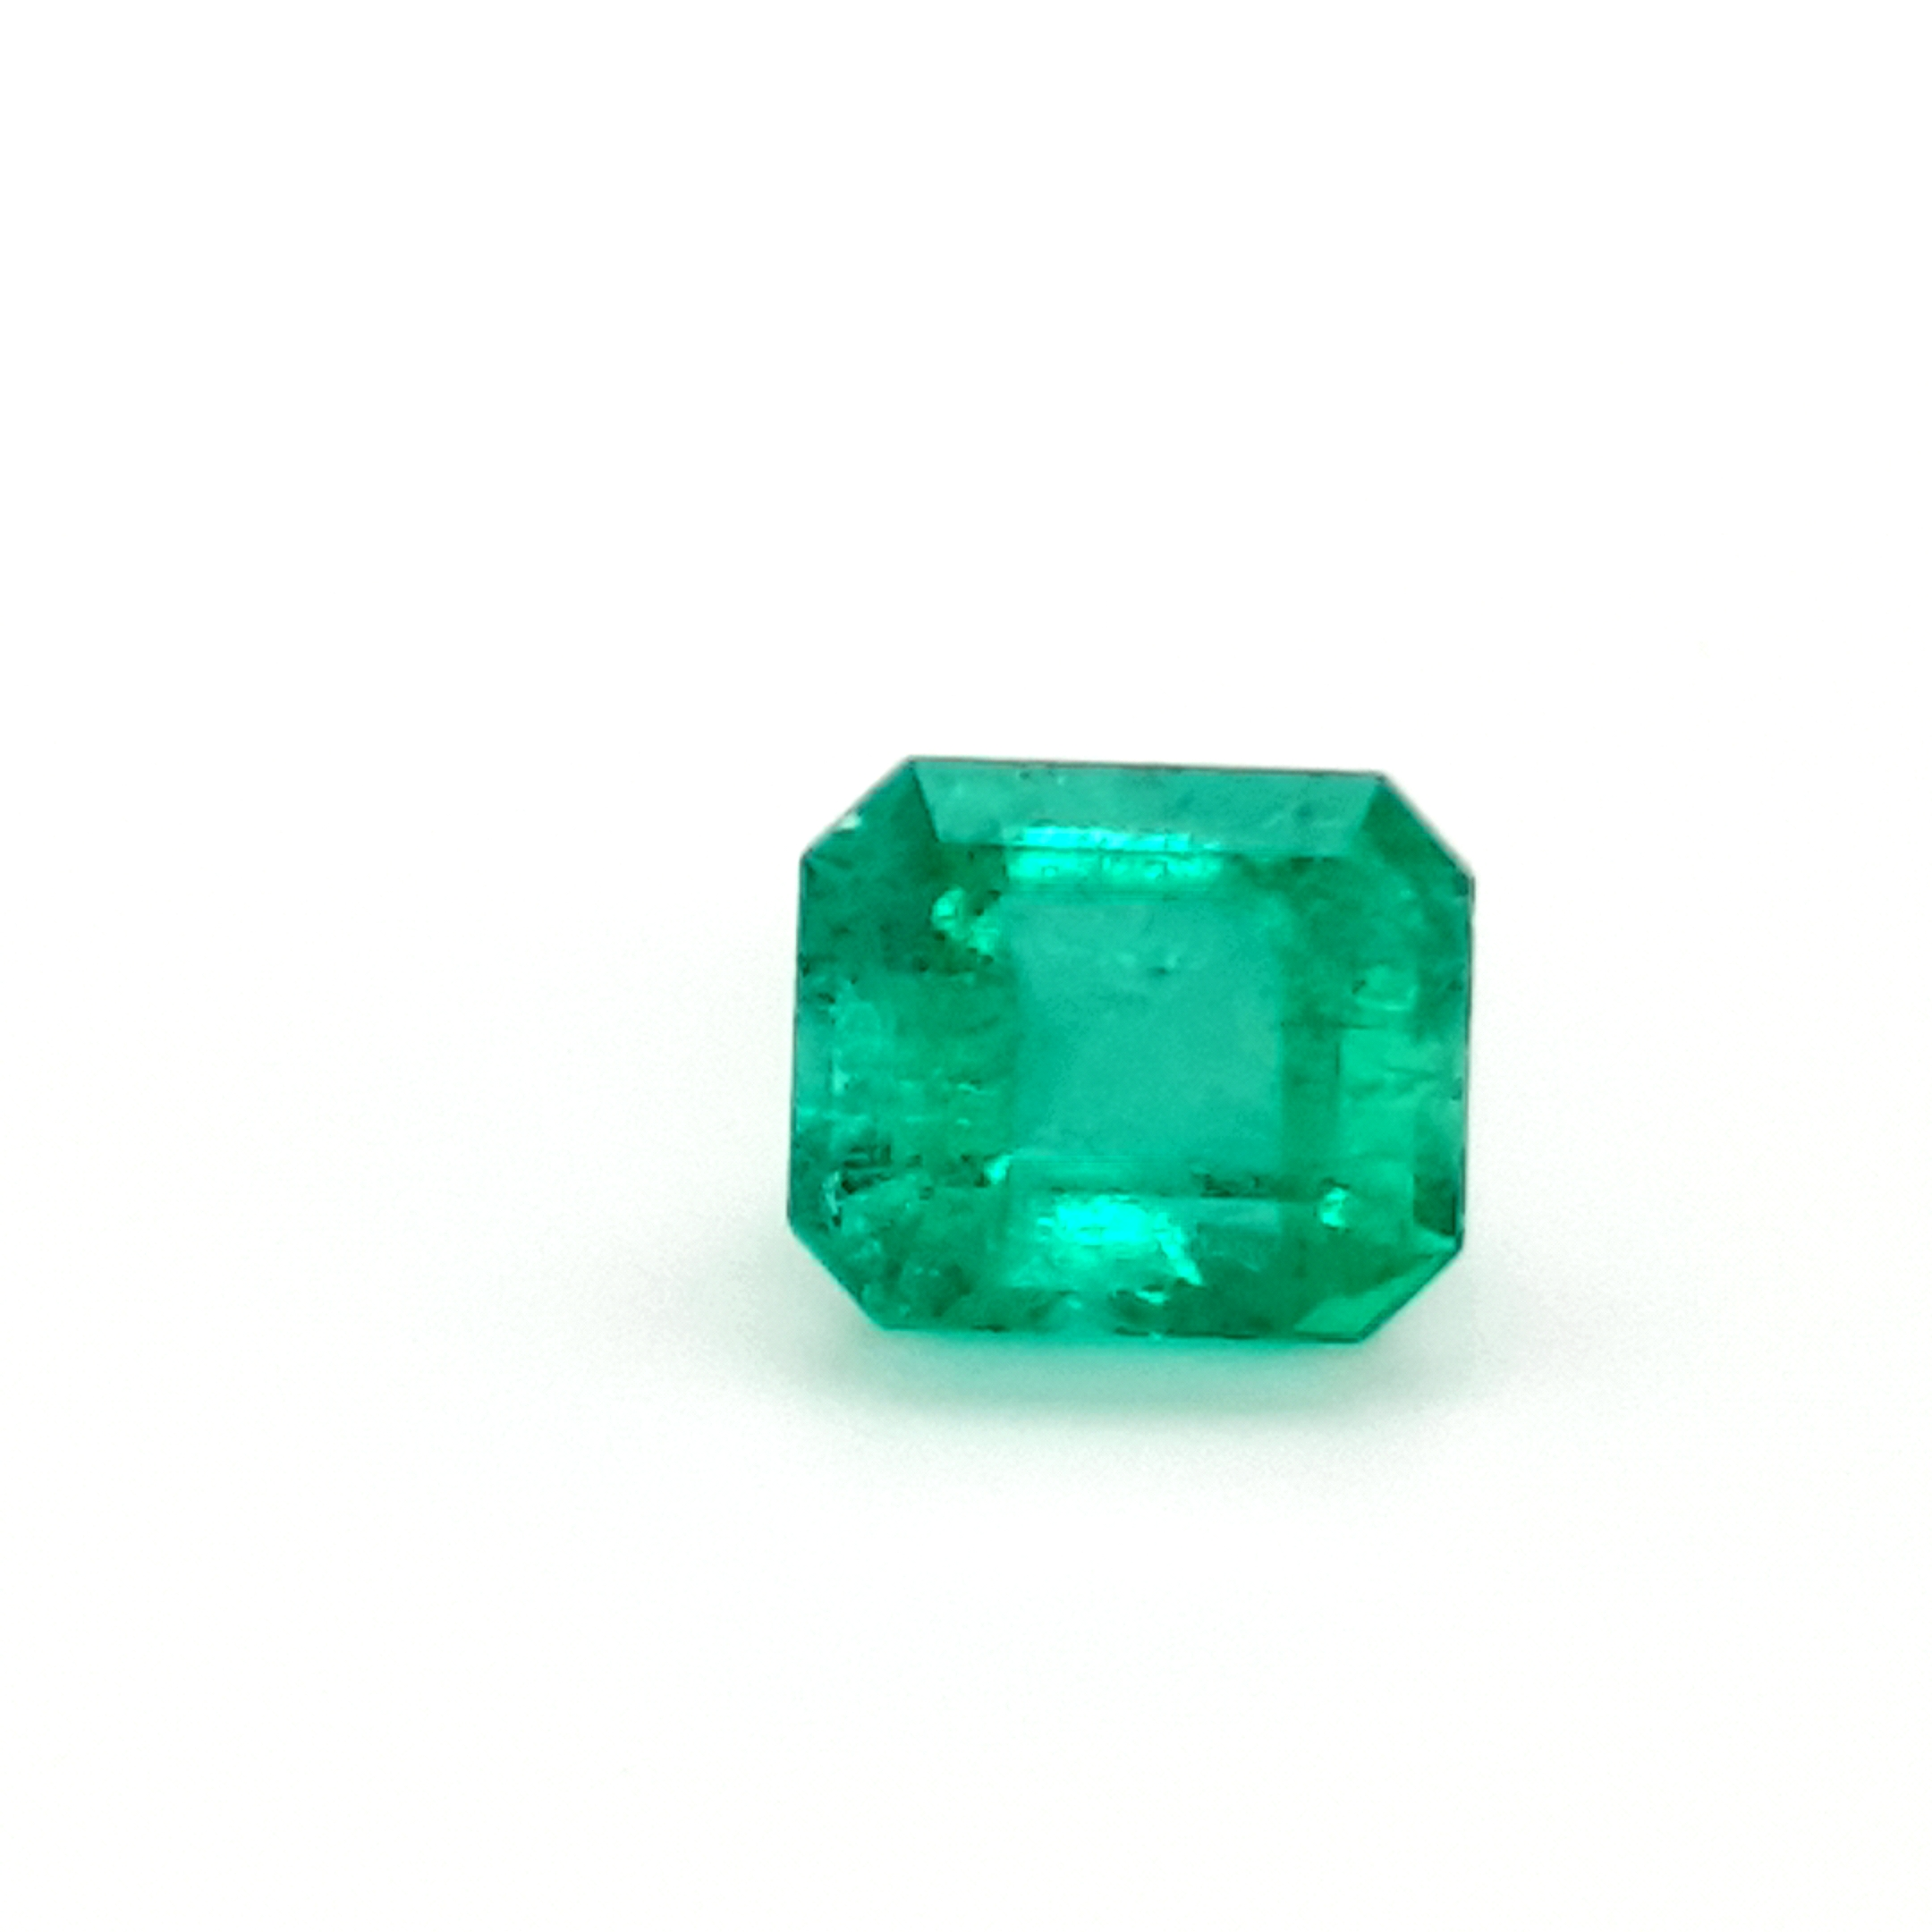 4,44ct. Emerald from Colombia cert. EMC13D6 ClaudiaHamann__2021-03-25-23-55-55